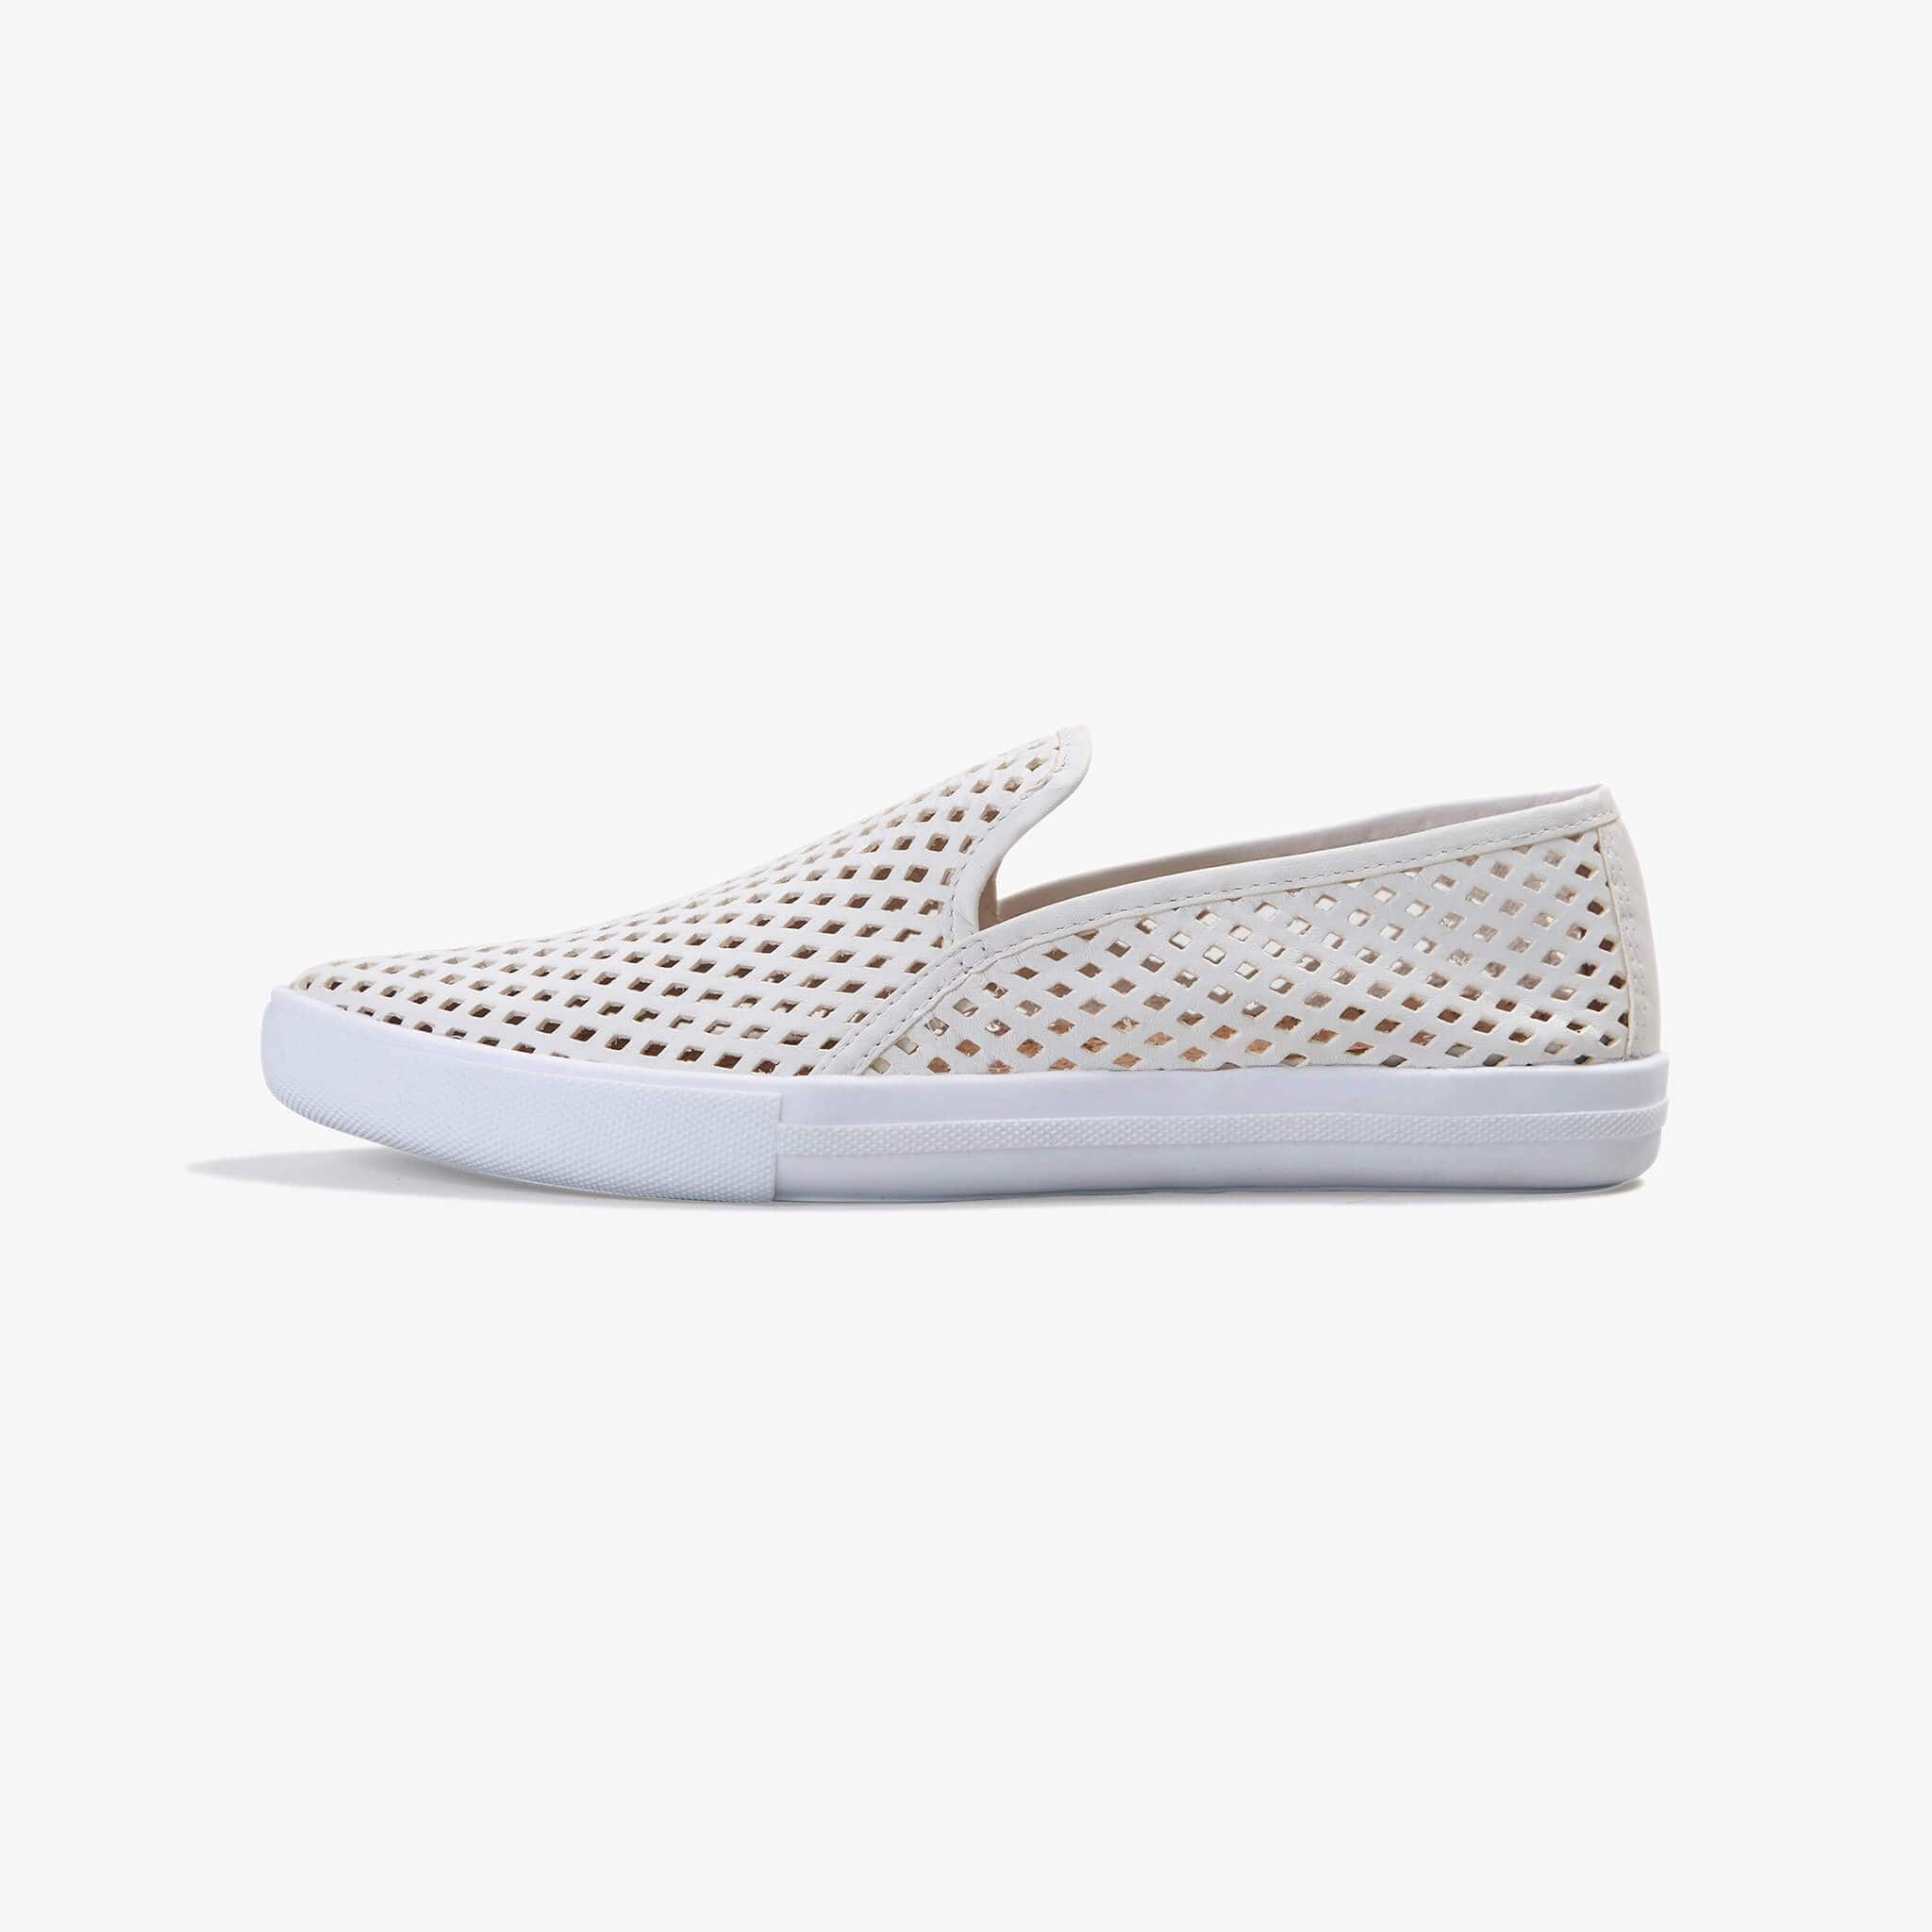 JIbs Slim Soft White Slip On Sneaker Flat Shoe Side